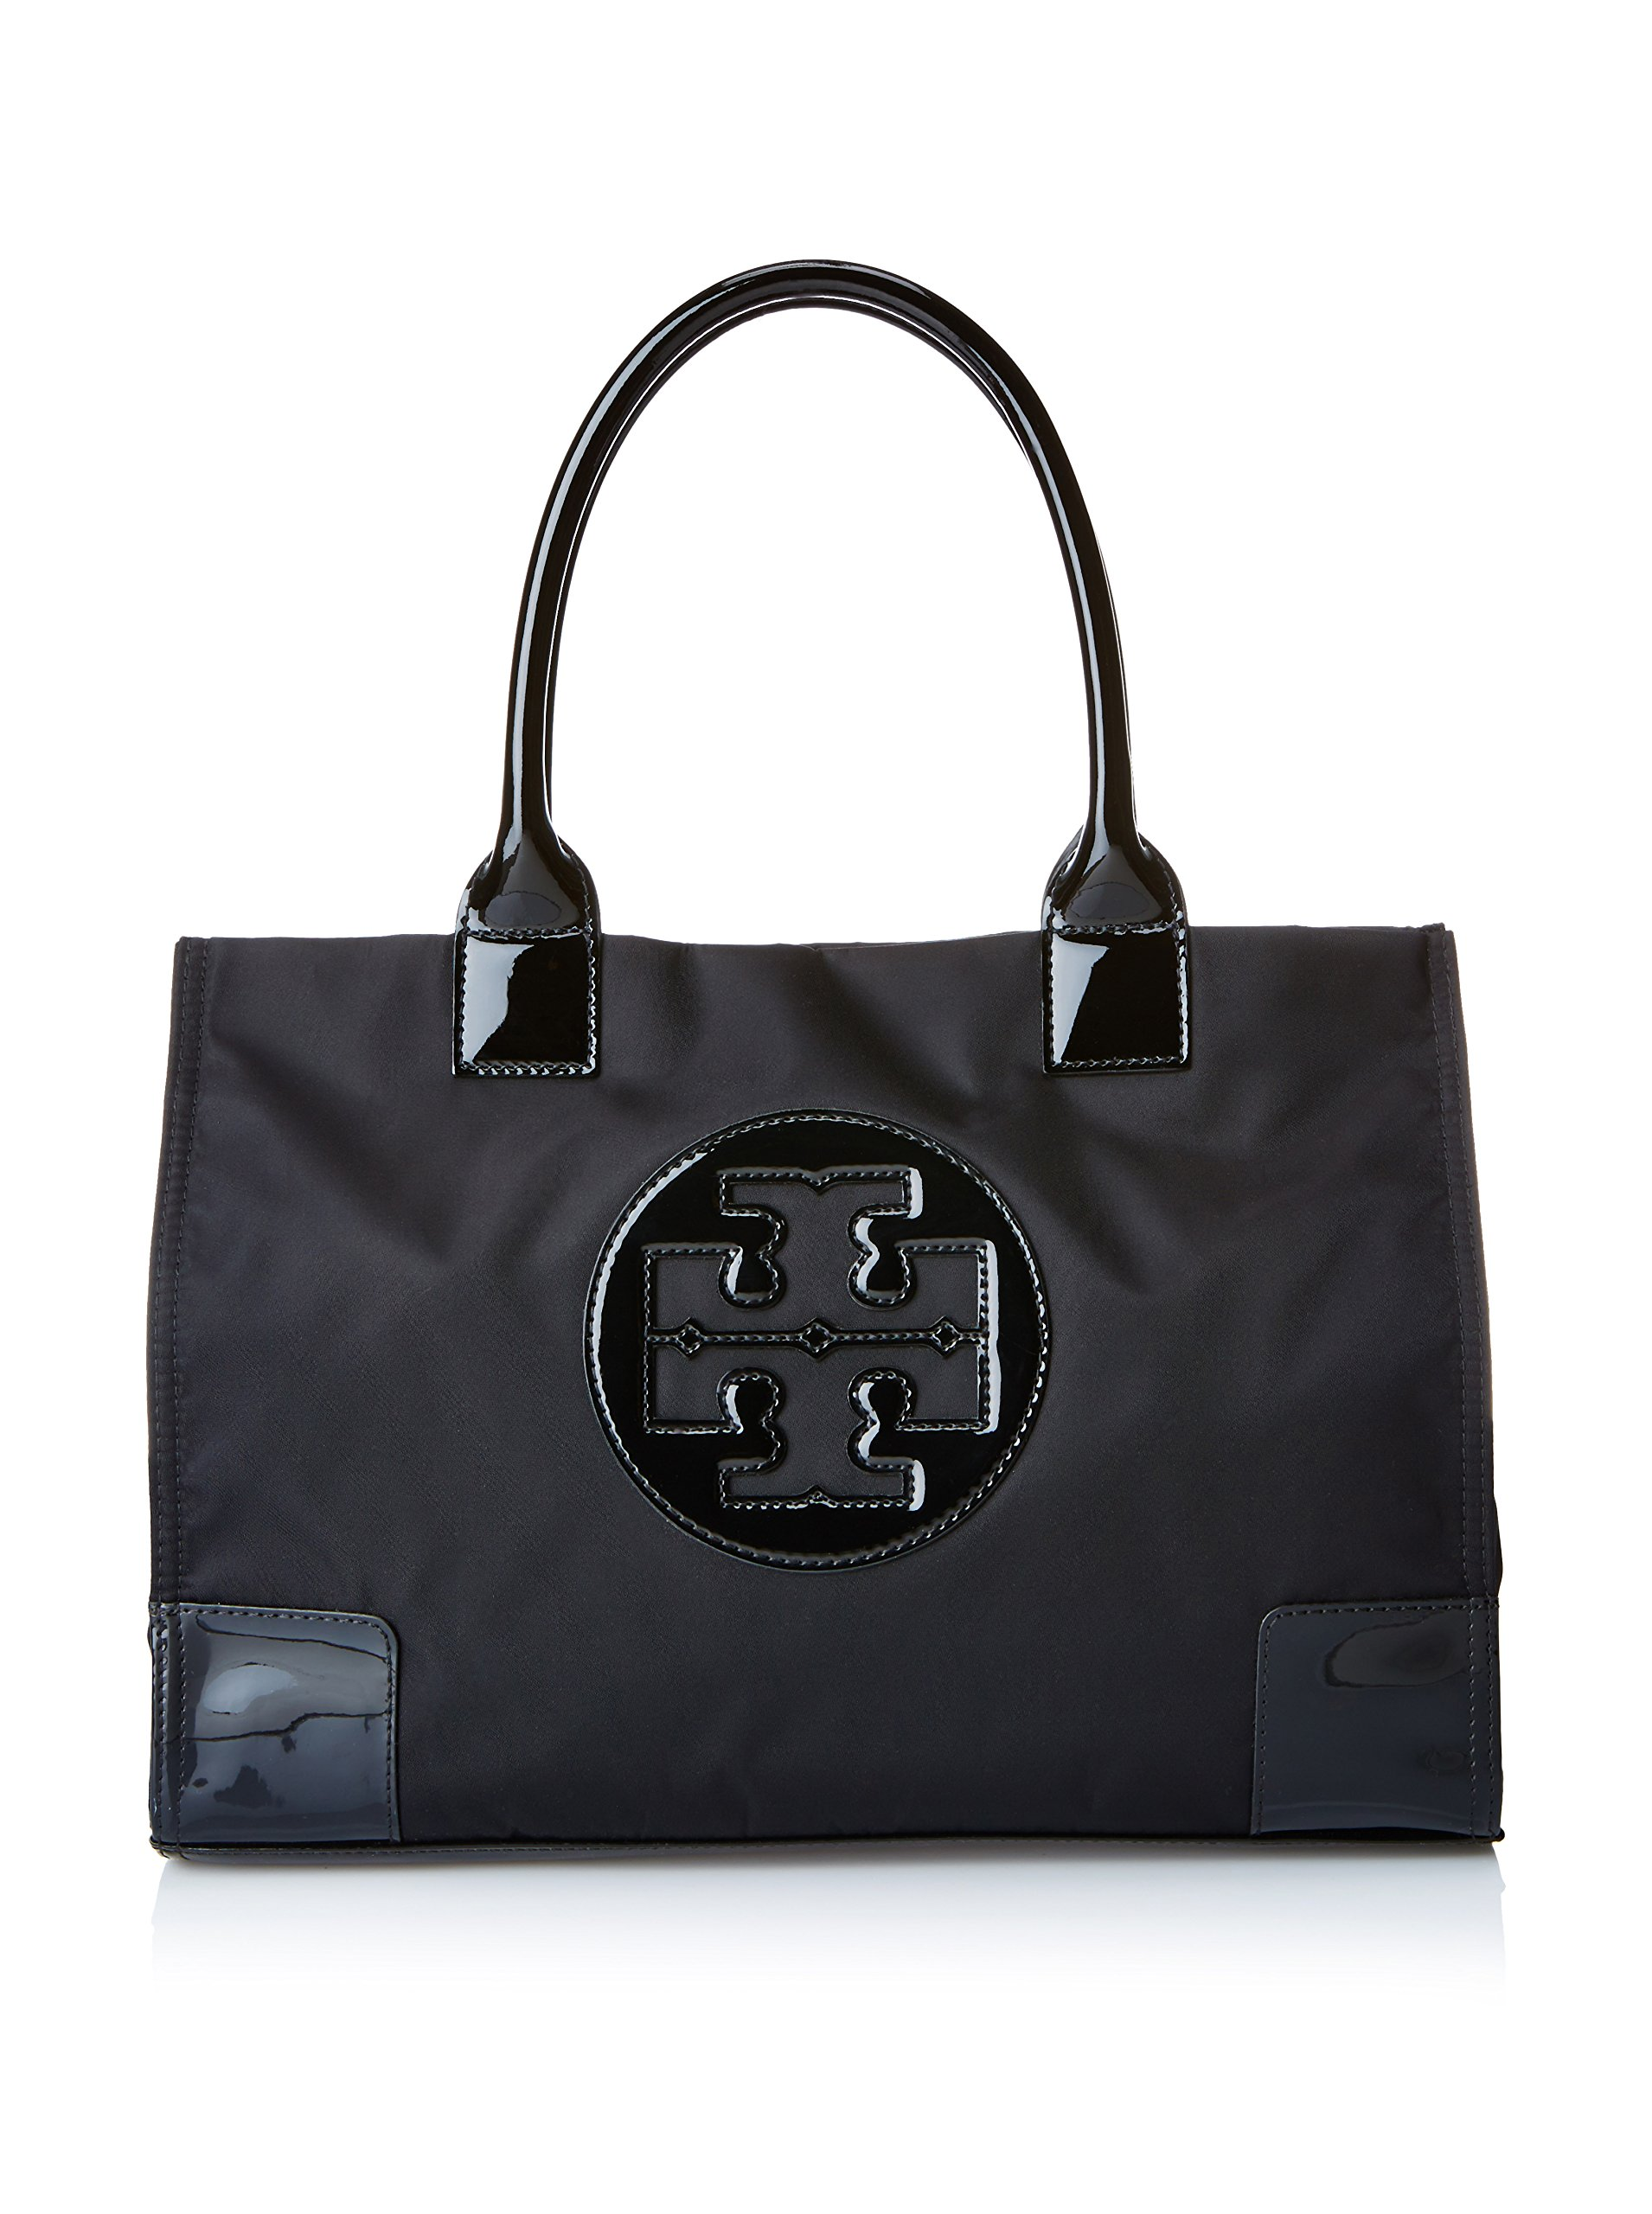 Tory Burch Nylon Mini Ella Tote - Black by Tory Burch